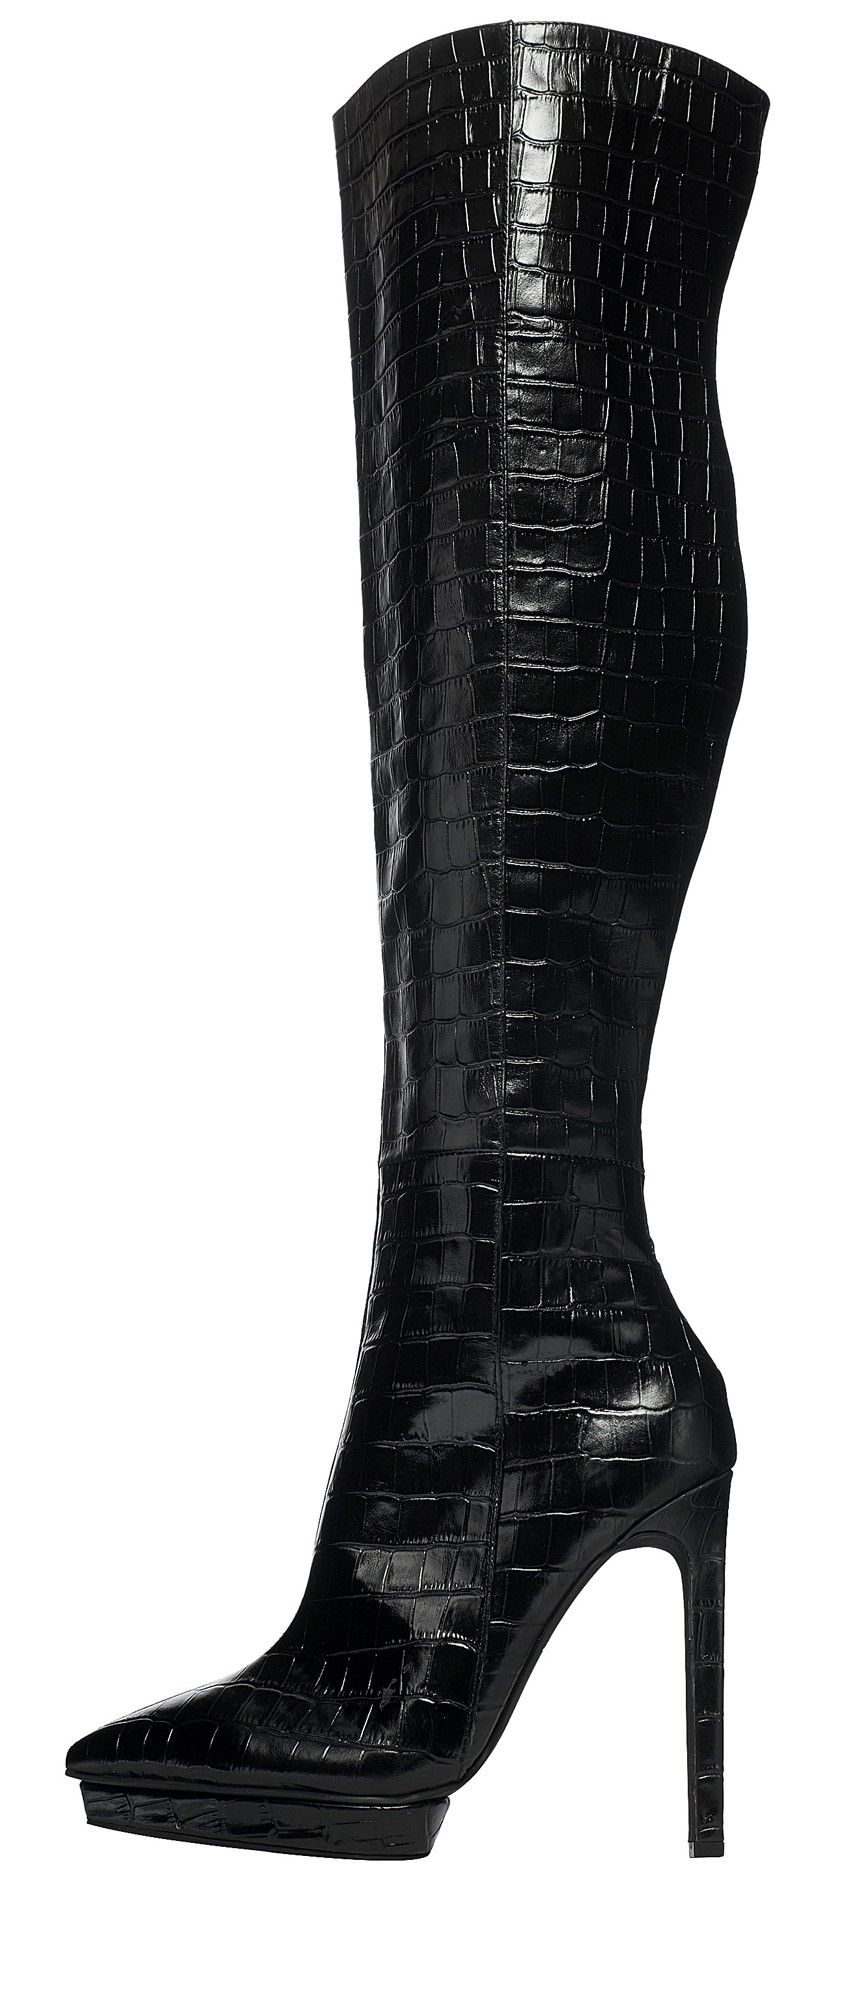 Jeffrey Campbell Shoes FEIST Shop All in Black Croco